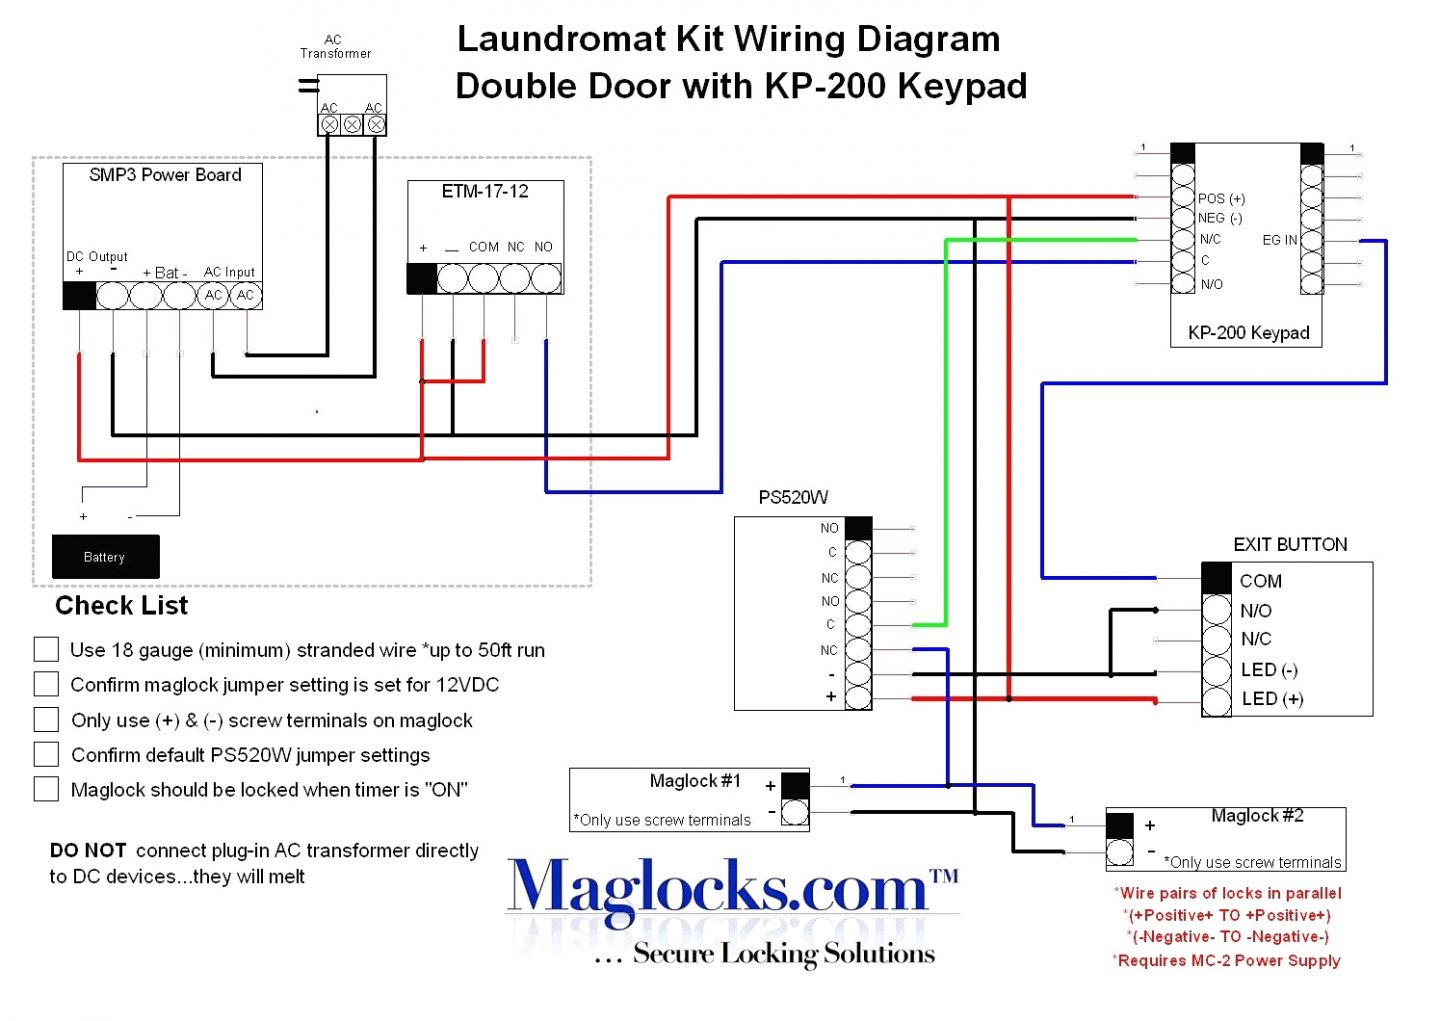 aiphone td 6h wiring diagram Collection-Aiphone Ml Wiring Diagram For Standard Series At Inter C Drawing 15-g